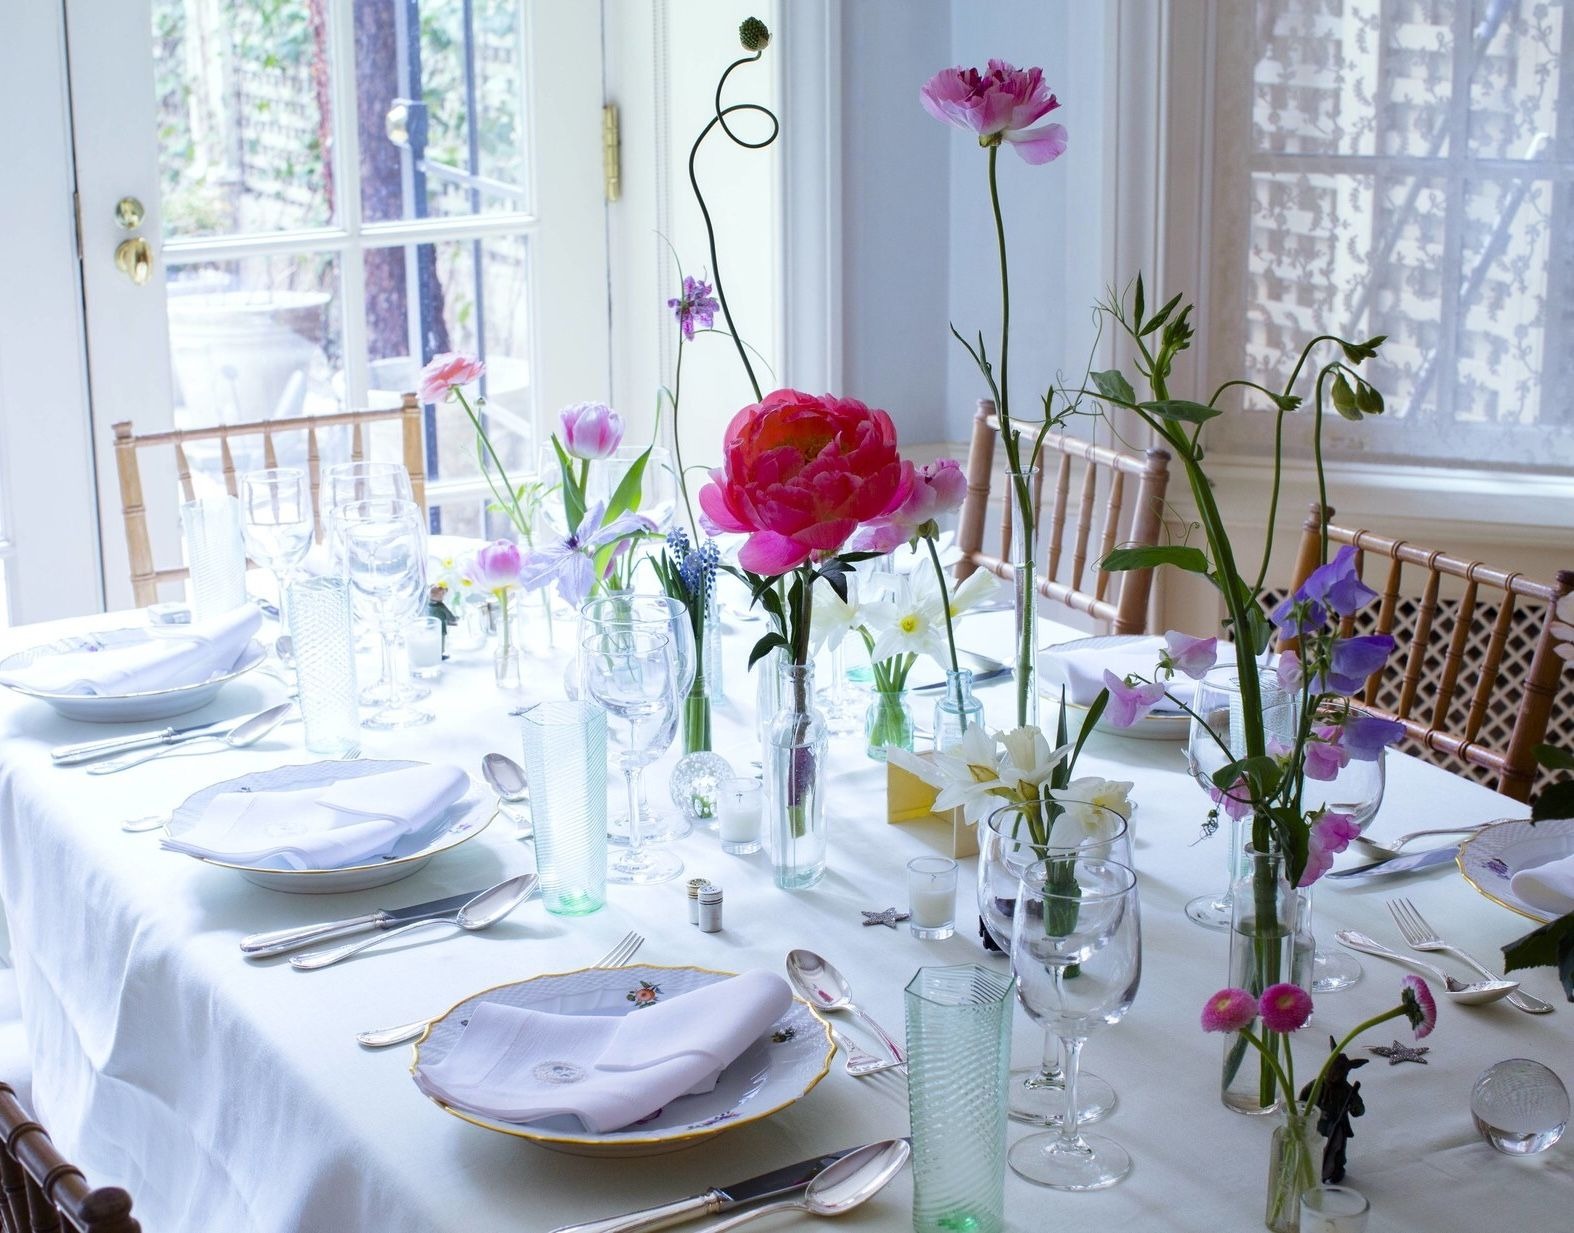 These Single Flower Arrangements Will Inspire Your Tabletops